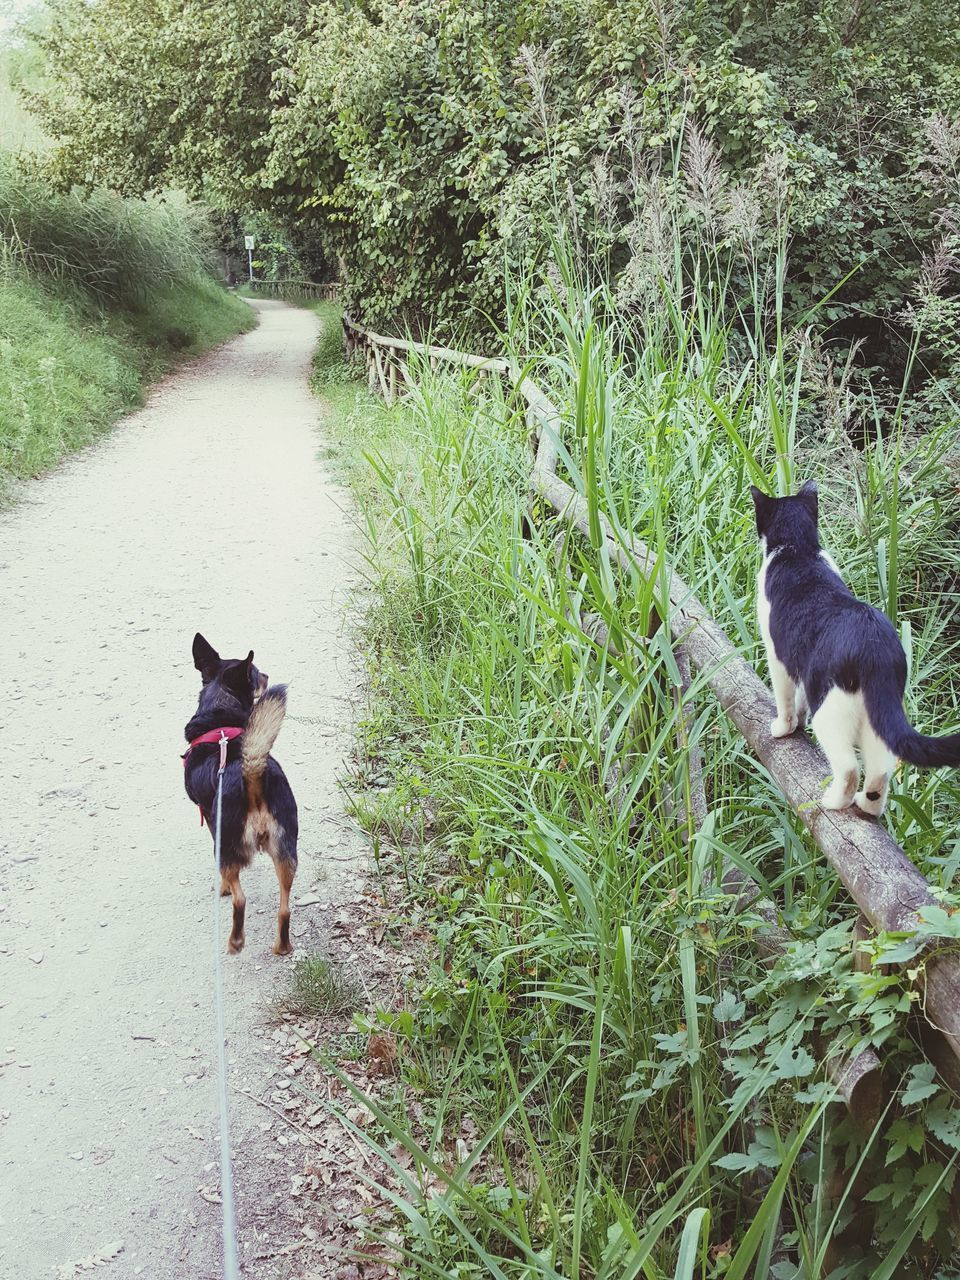 pets, dog, domestic animals, animal themes, mammal, two animals, grass, high angle view, german shepherd, day, outdoors, pembroke welsh corgi, no people, black color, nature, togetherness